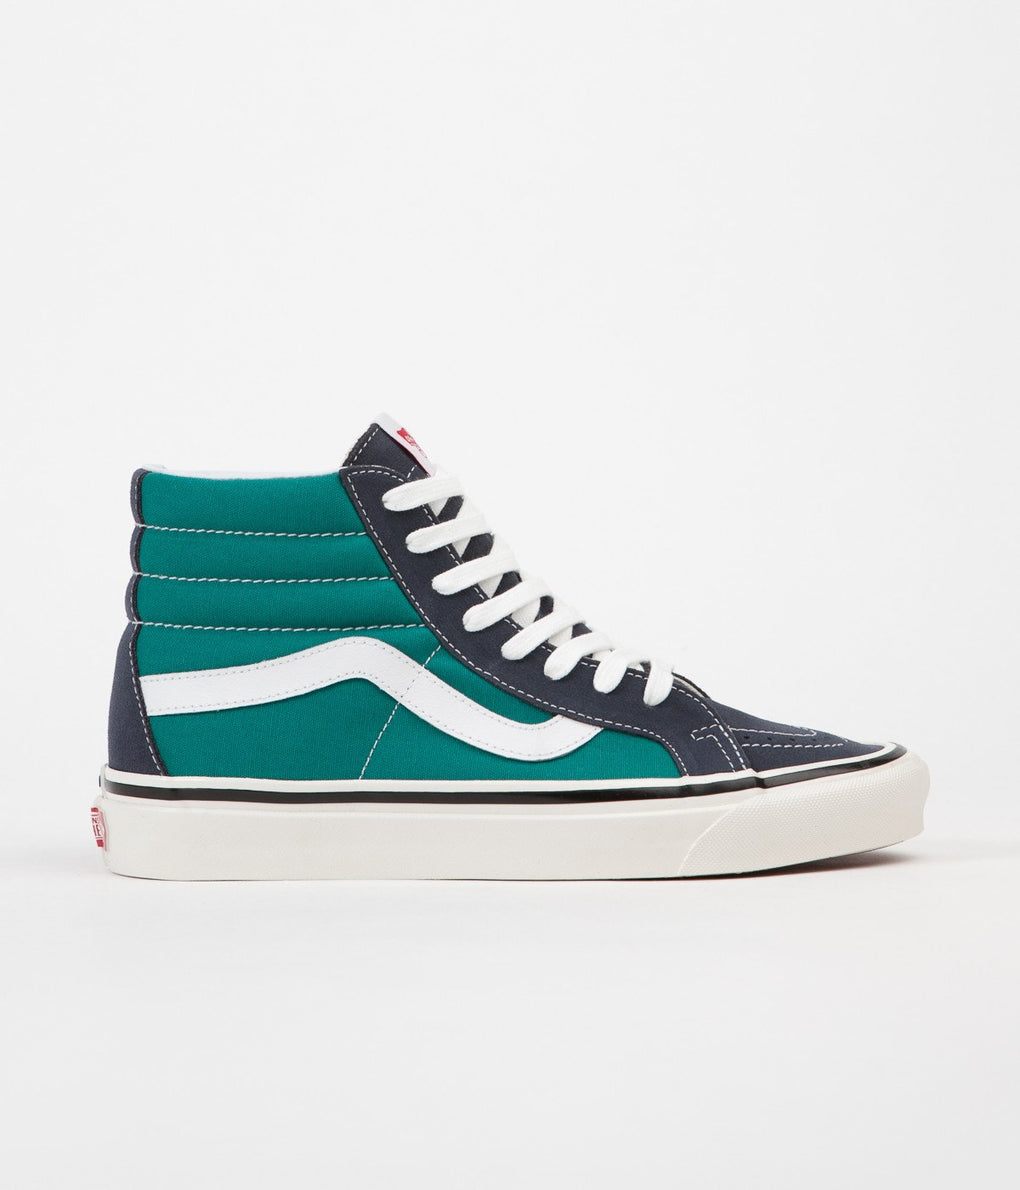 Vans Sk8-Hi 38 DX Anaheim Factory Shoes - OG Navy / OG Mallard